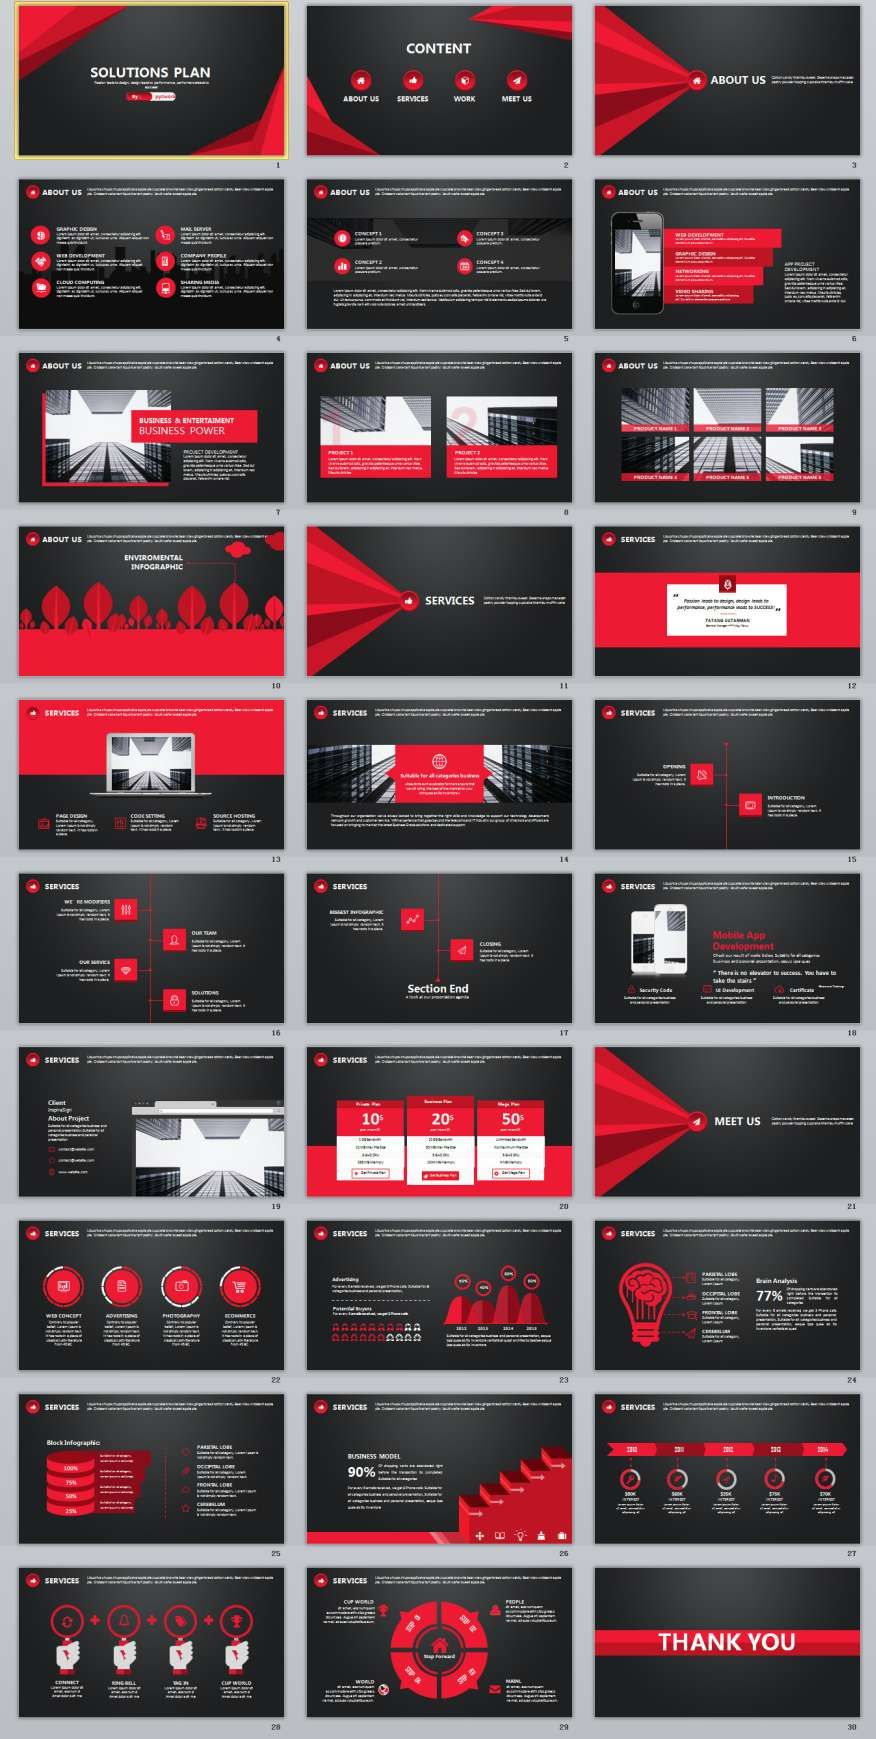 30 Black Red Business Plan Powerpoint Templates Creative